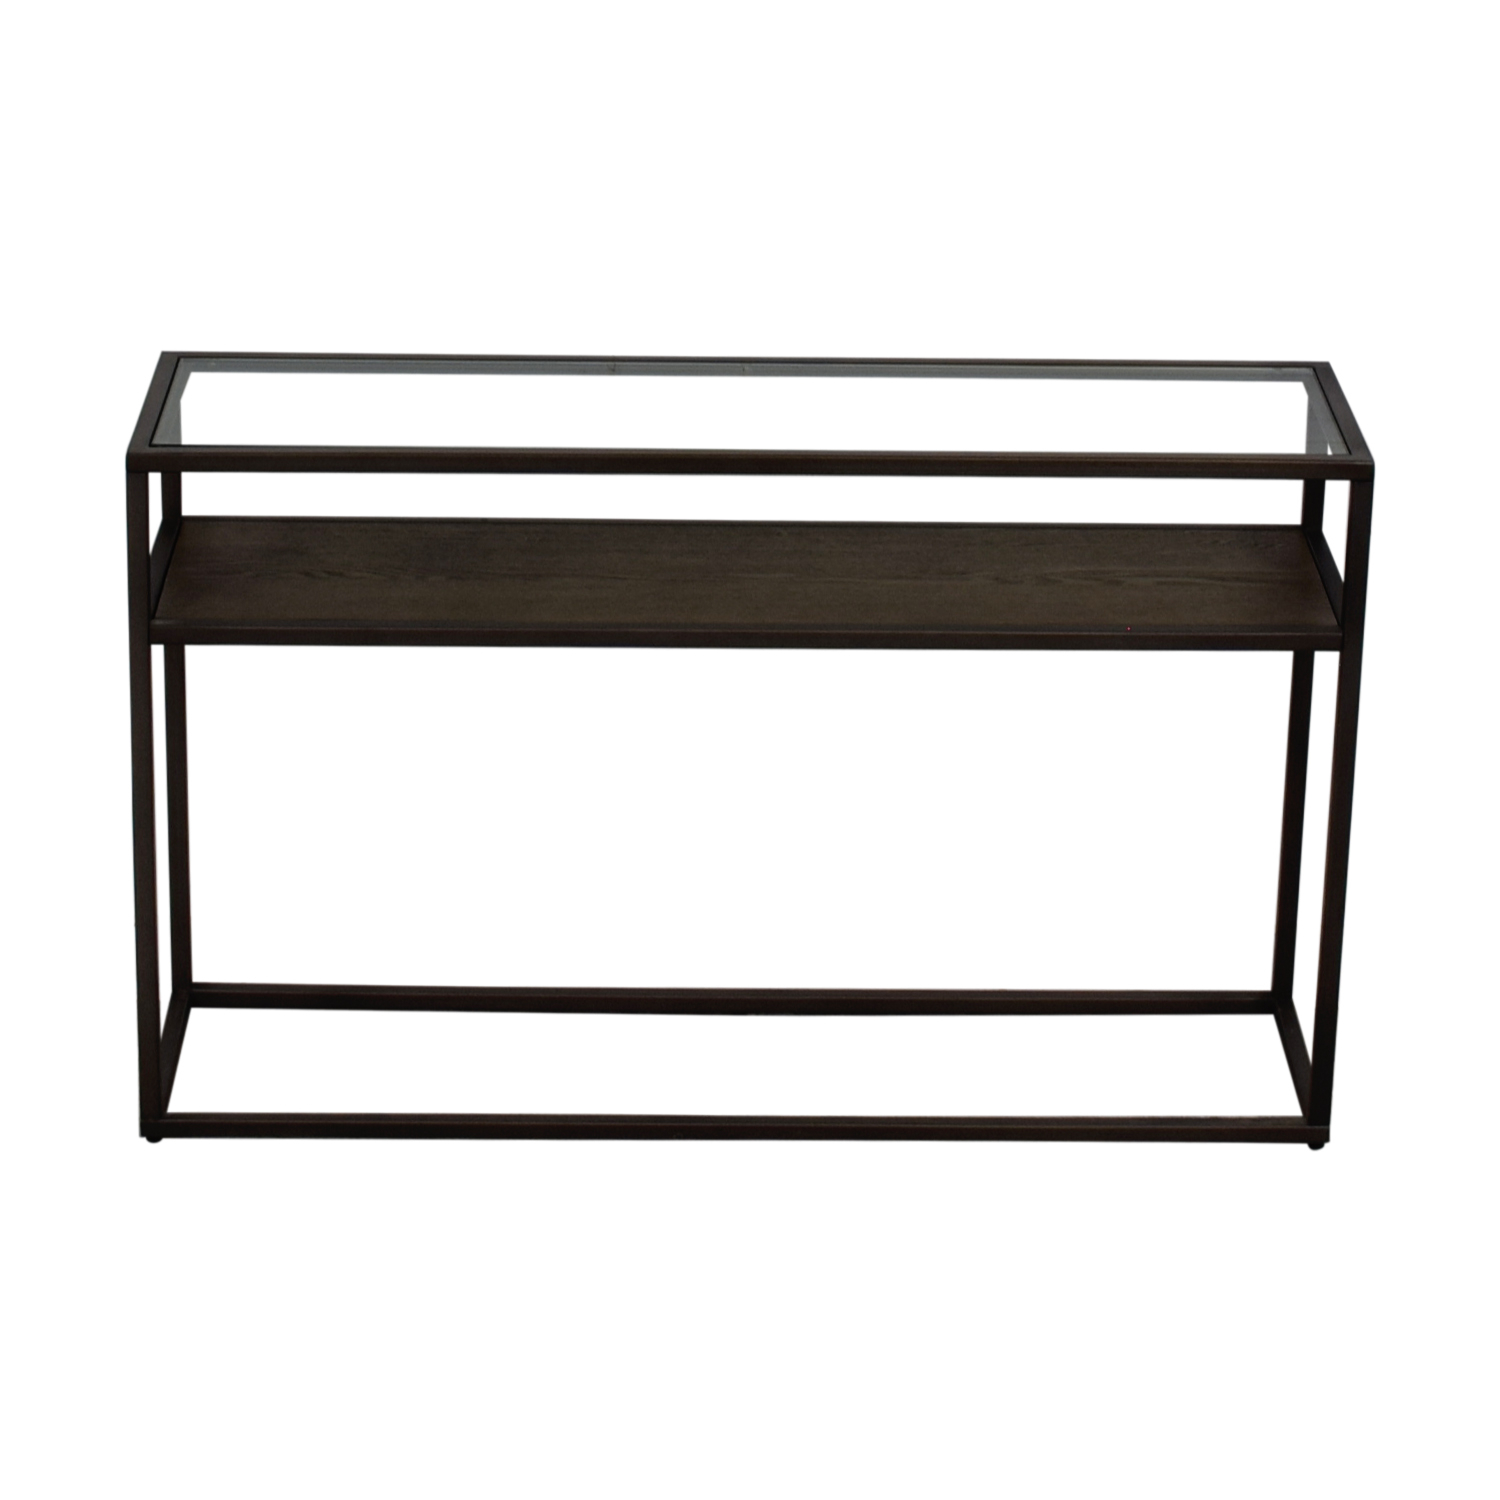 Crate & Barrel Switch Glass Wood And Metal Console Table With Regard To Switch Console Tables (View 4 of 30)